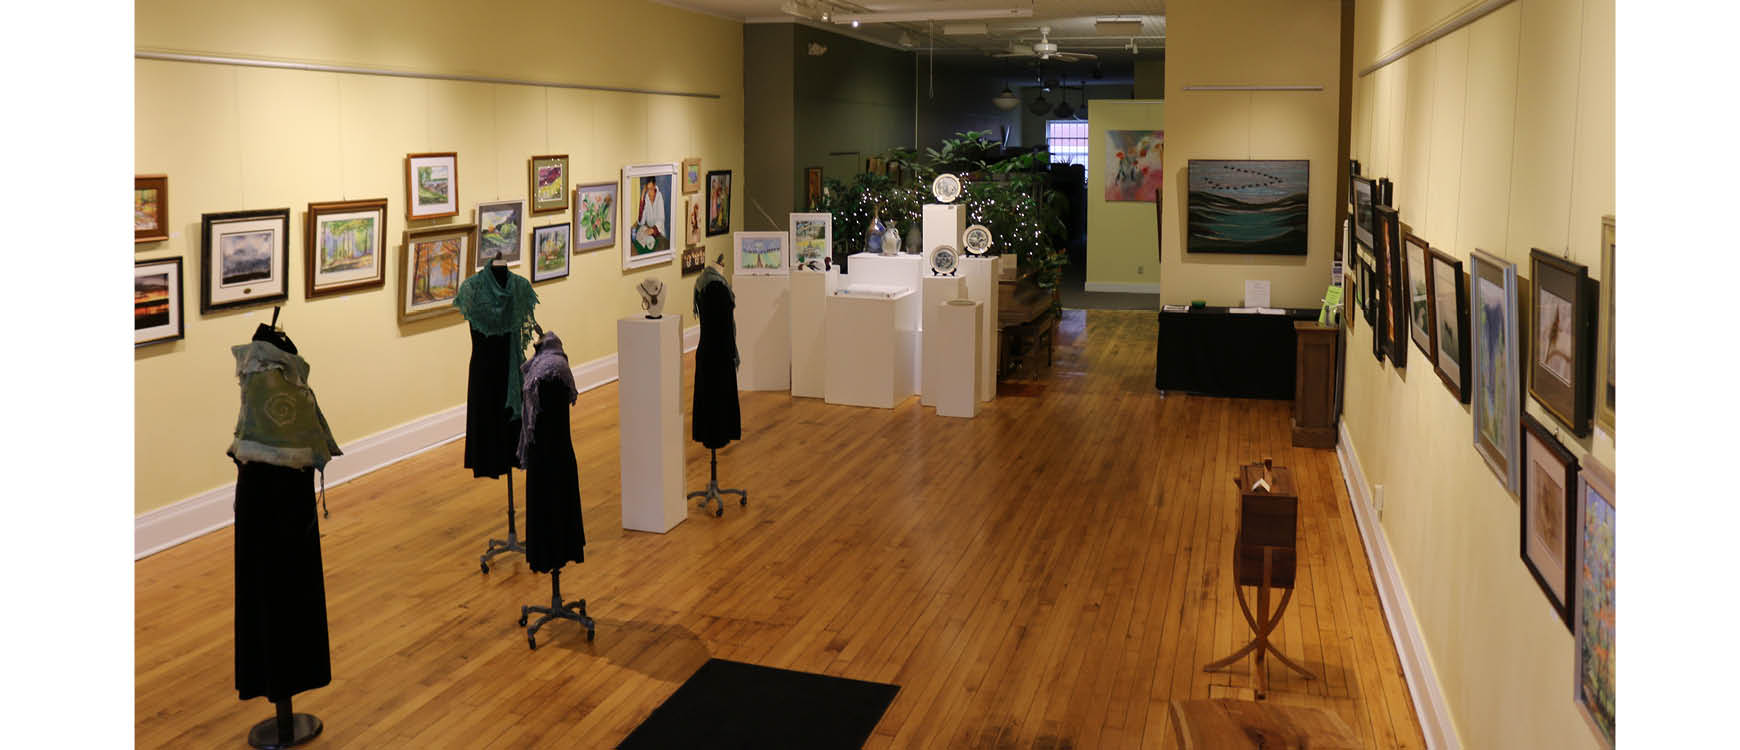 Local Color: ACWC's Member Show (Showing in Main Gallery until February 26)